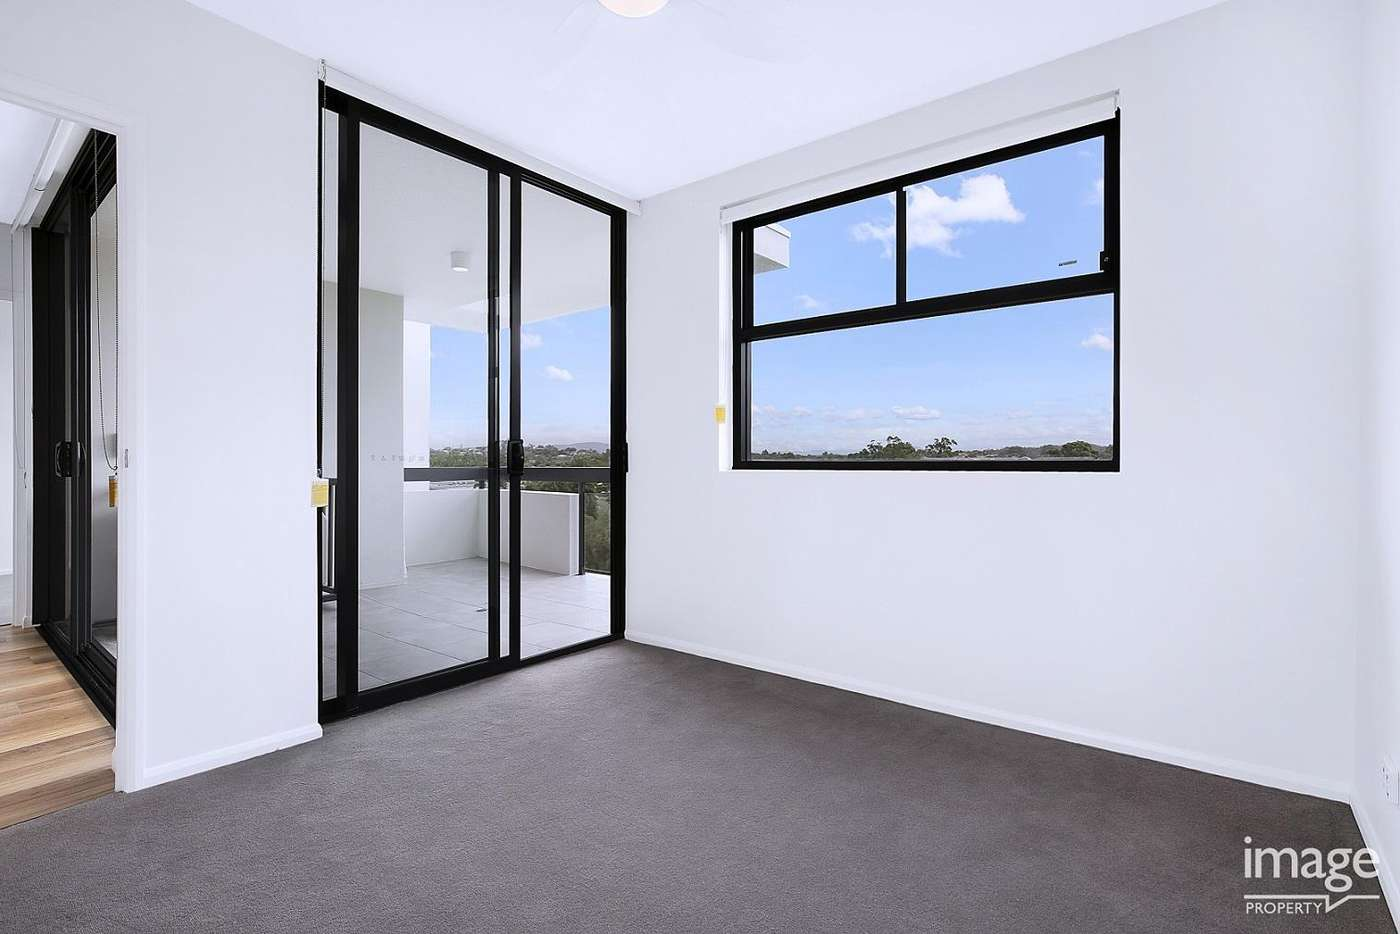 Seventh view of Homely unit listing, 506/10-14 Curwen Terrace, Chermside QLD 4032